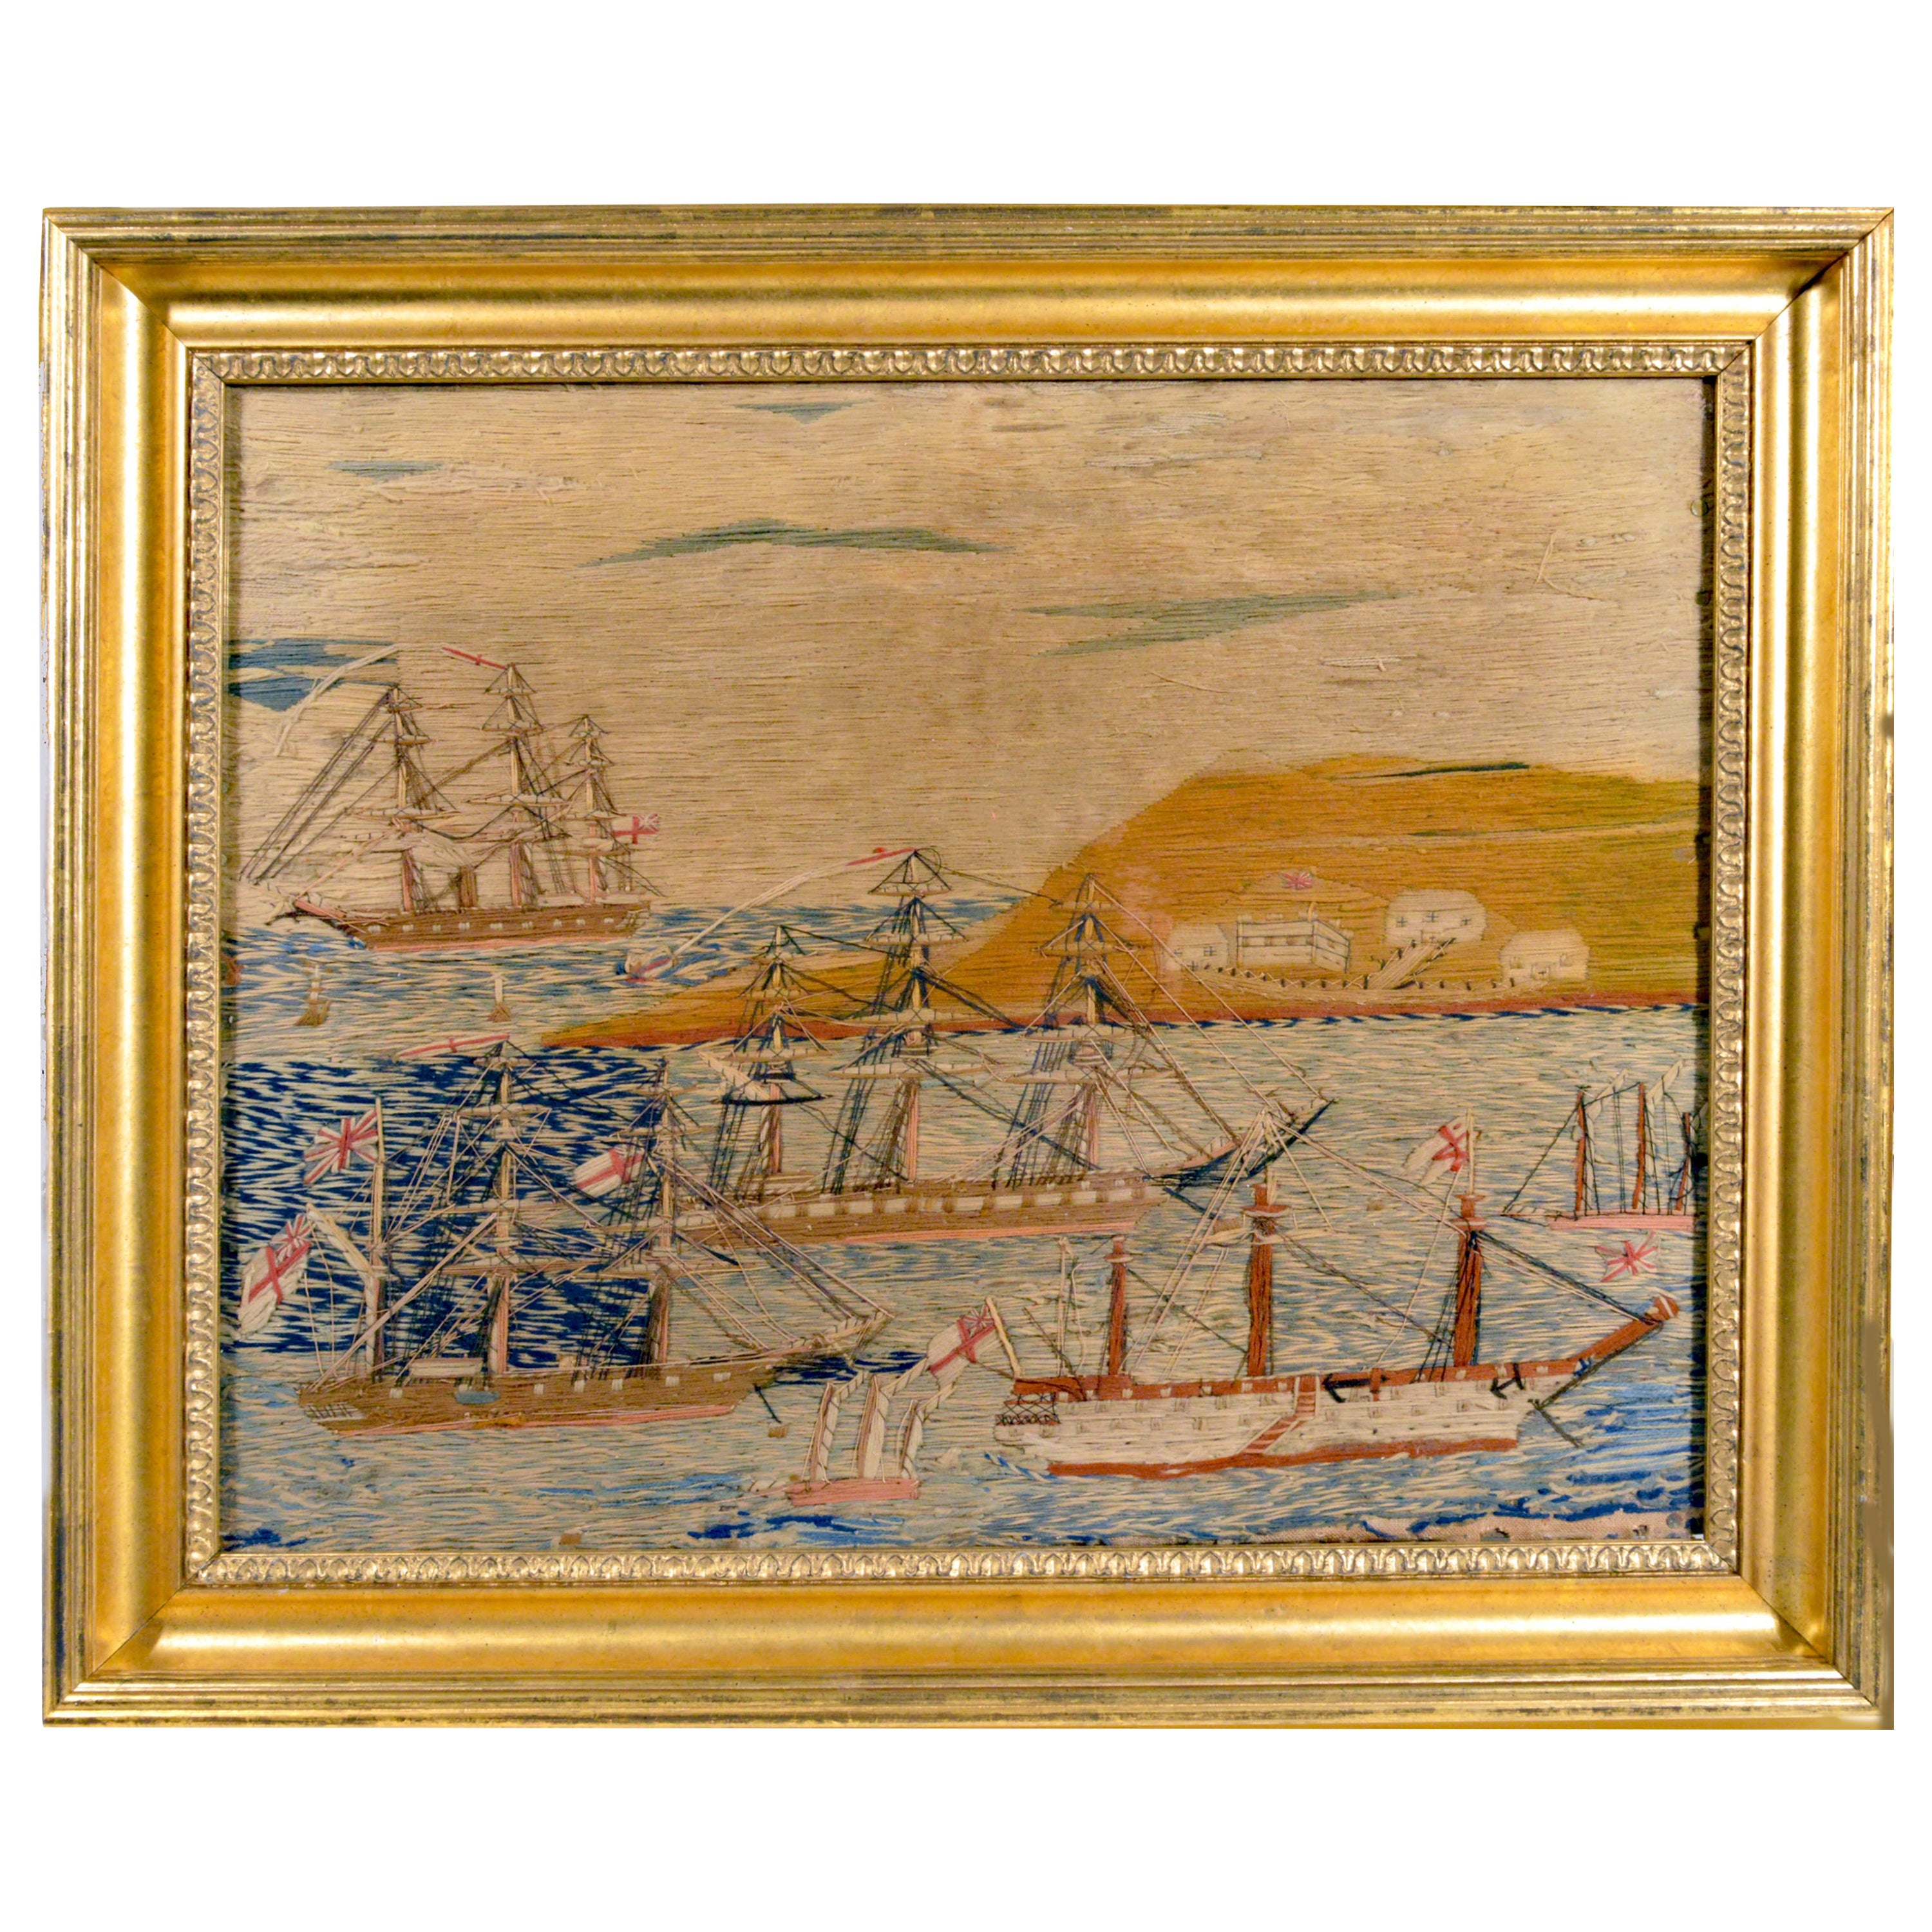 English Sailor's Woolwork or Woolie with Multiple Ships in a Bay, circa 1875